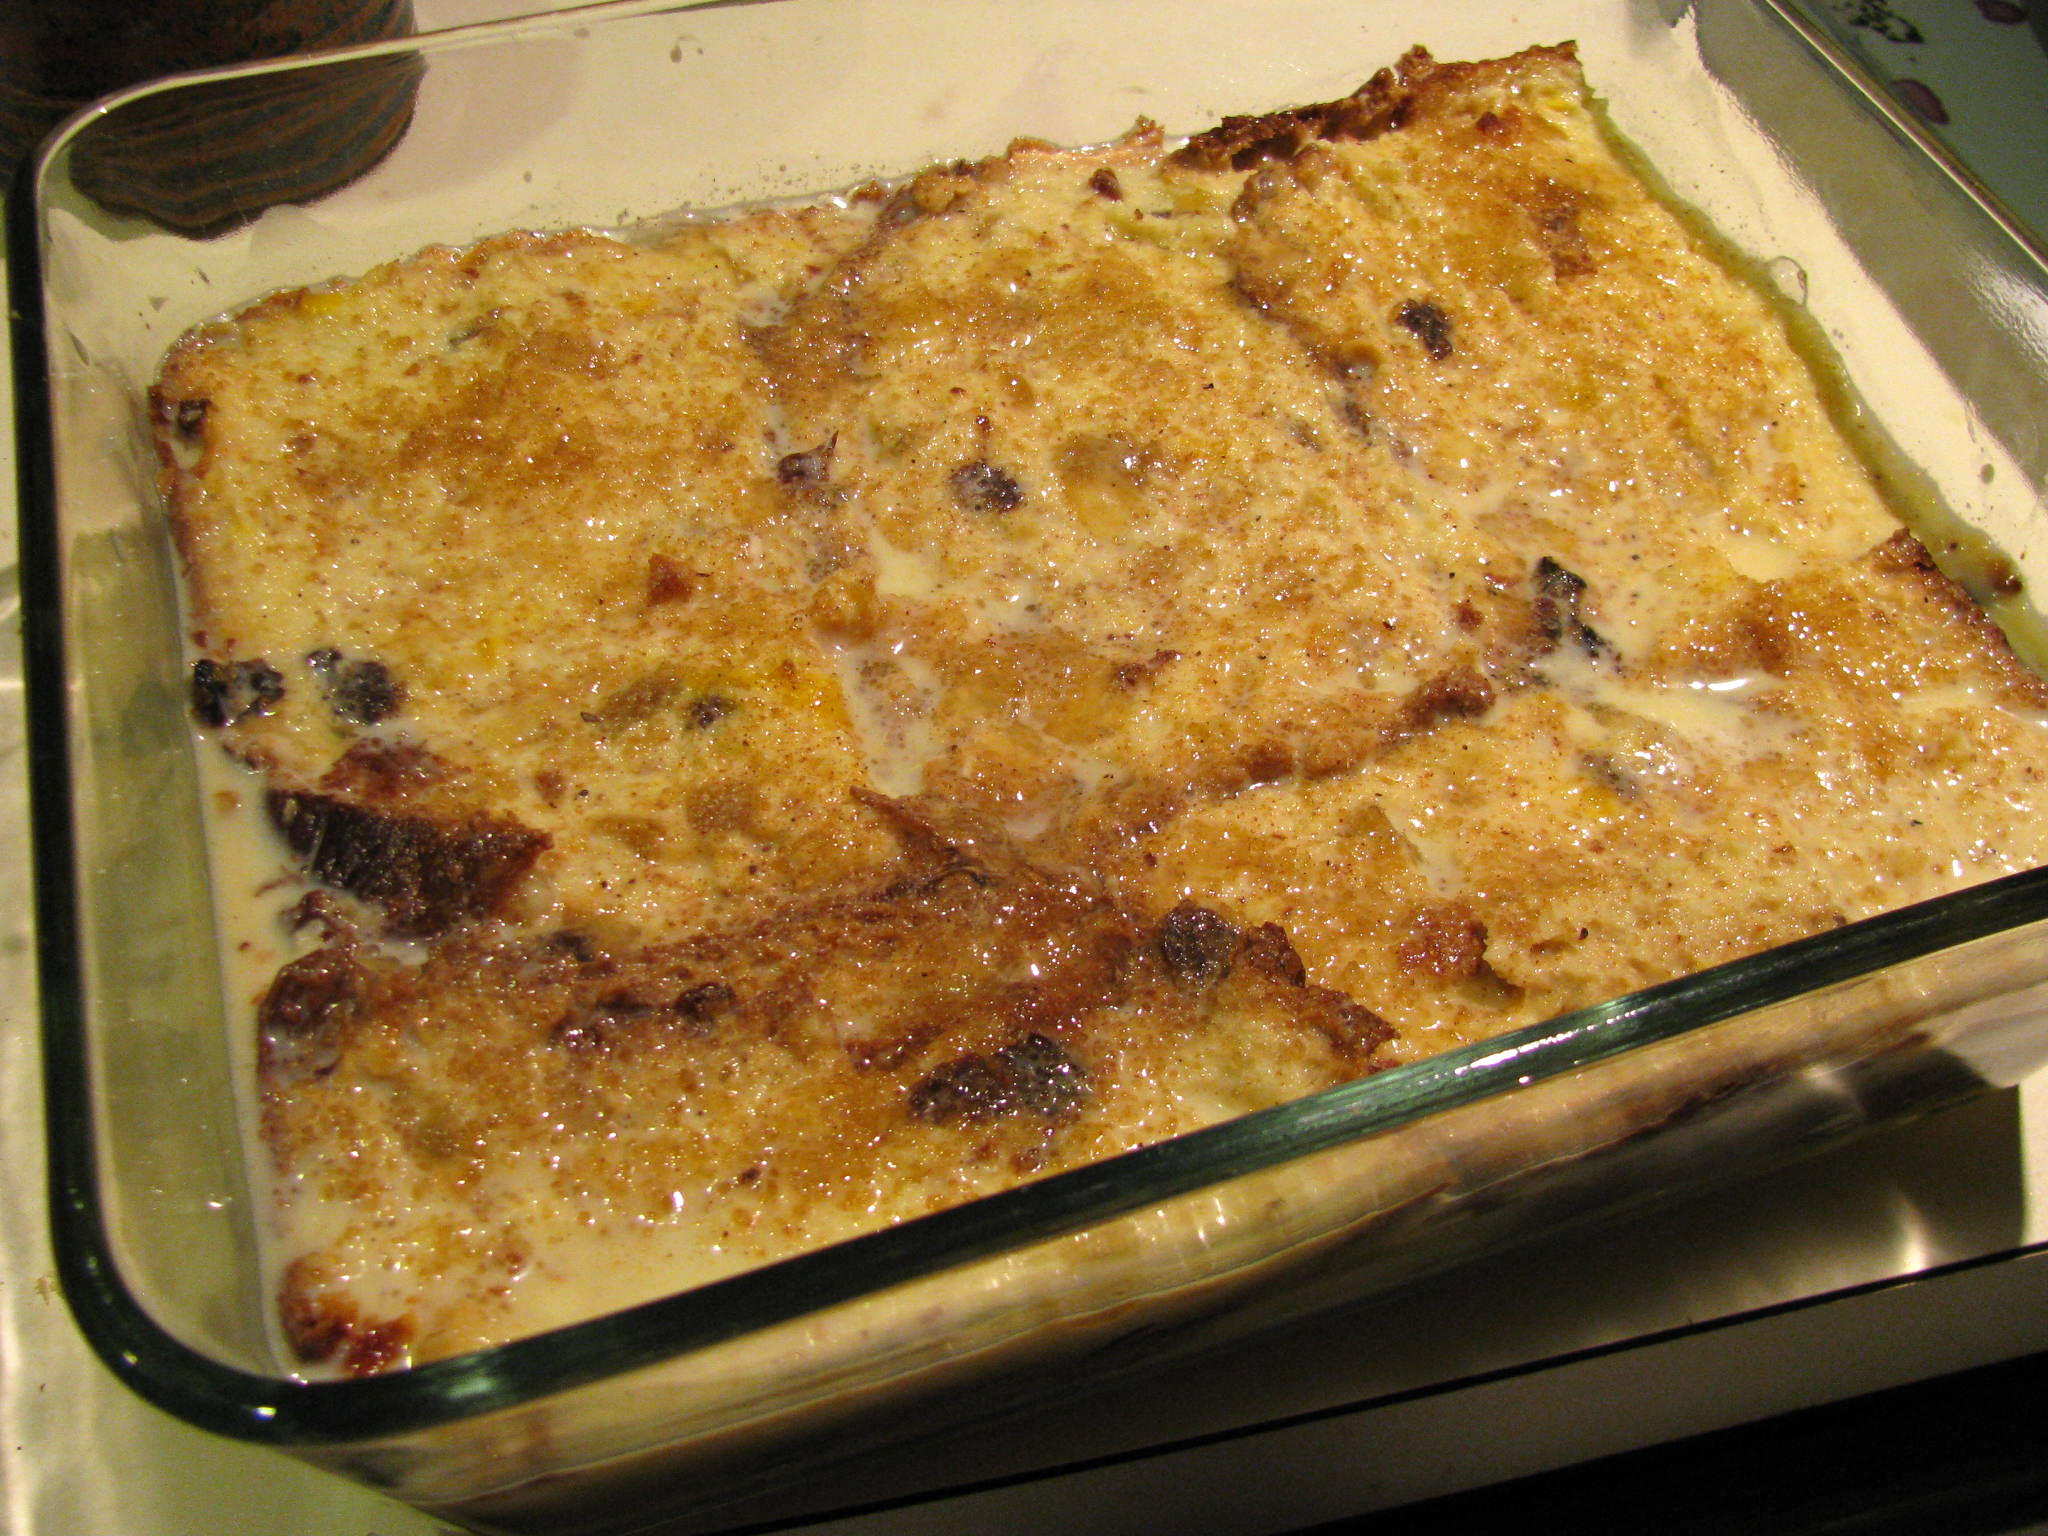 Here are a couple of basic bread and butter pudding recipes from Delia ...